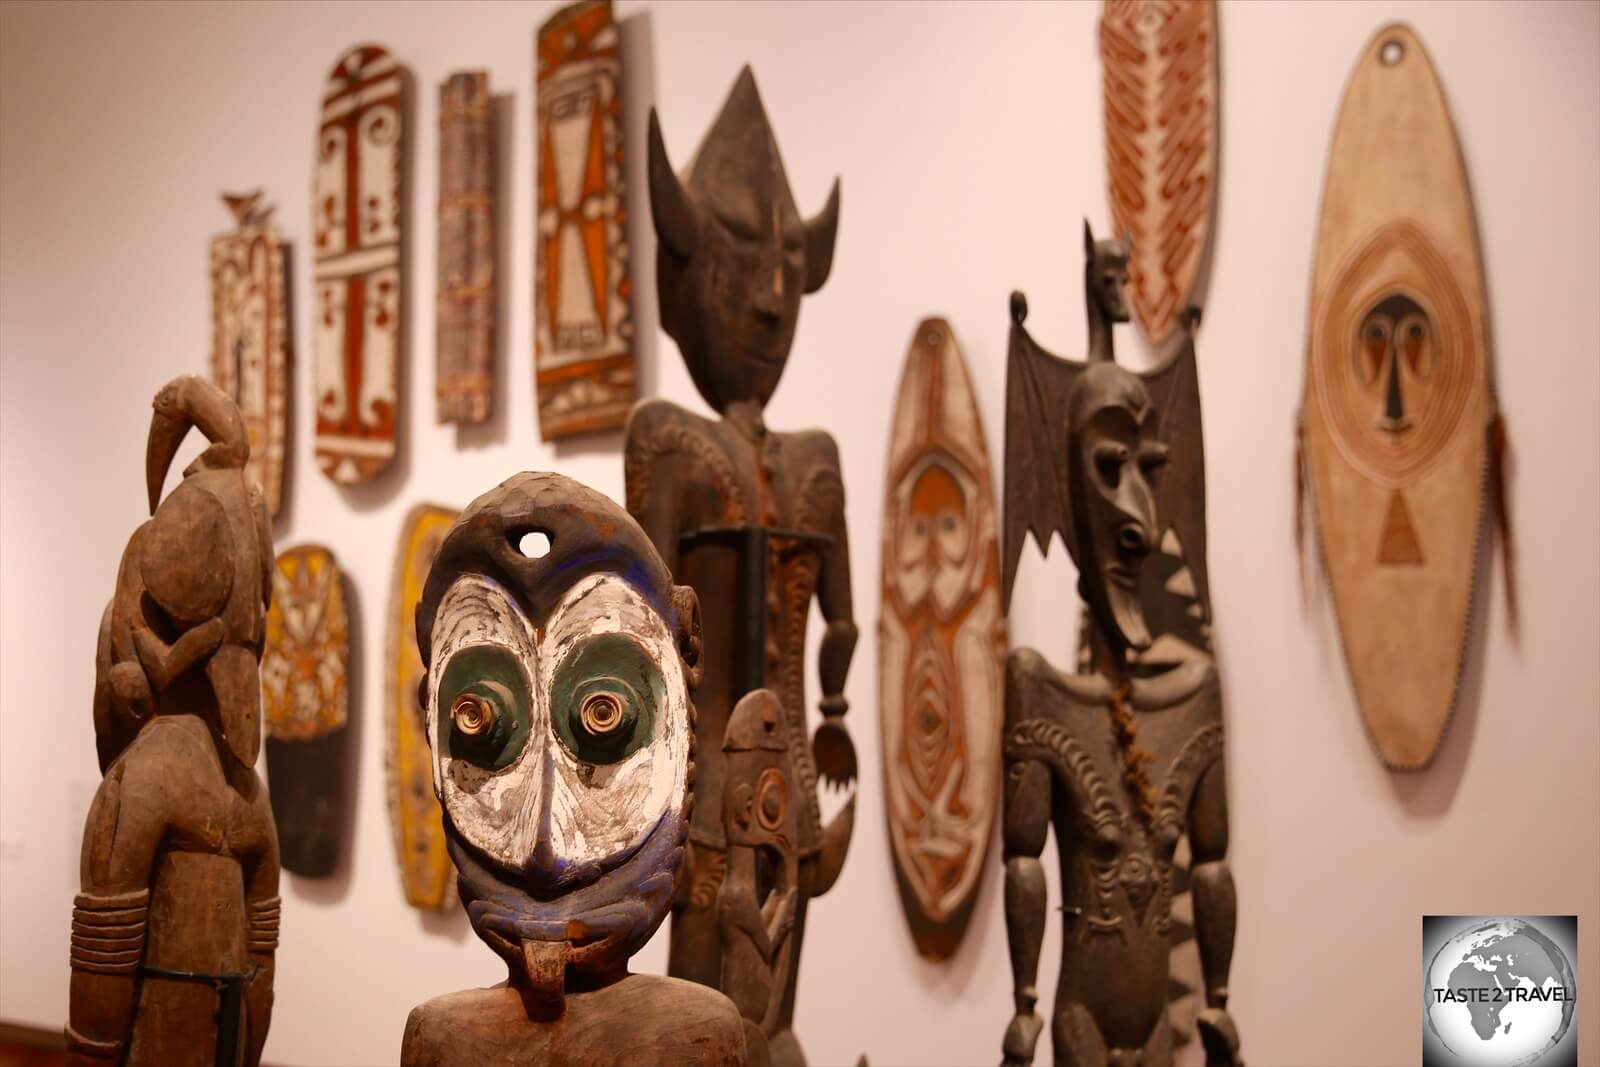 The displays at NMAG highlight the diverse culture of the 750 tribes of PNG.